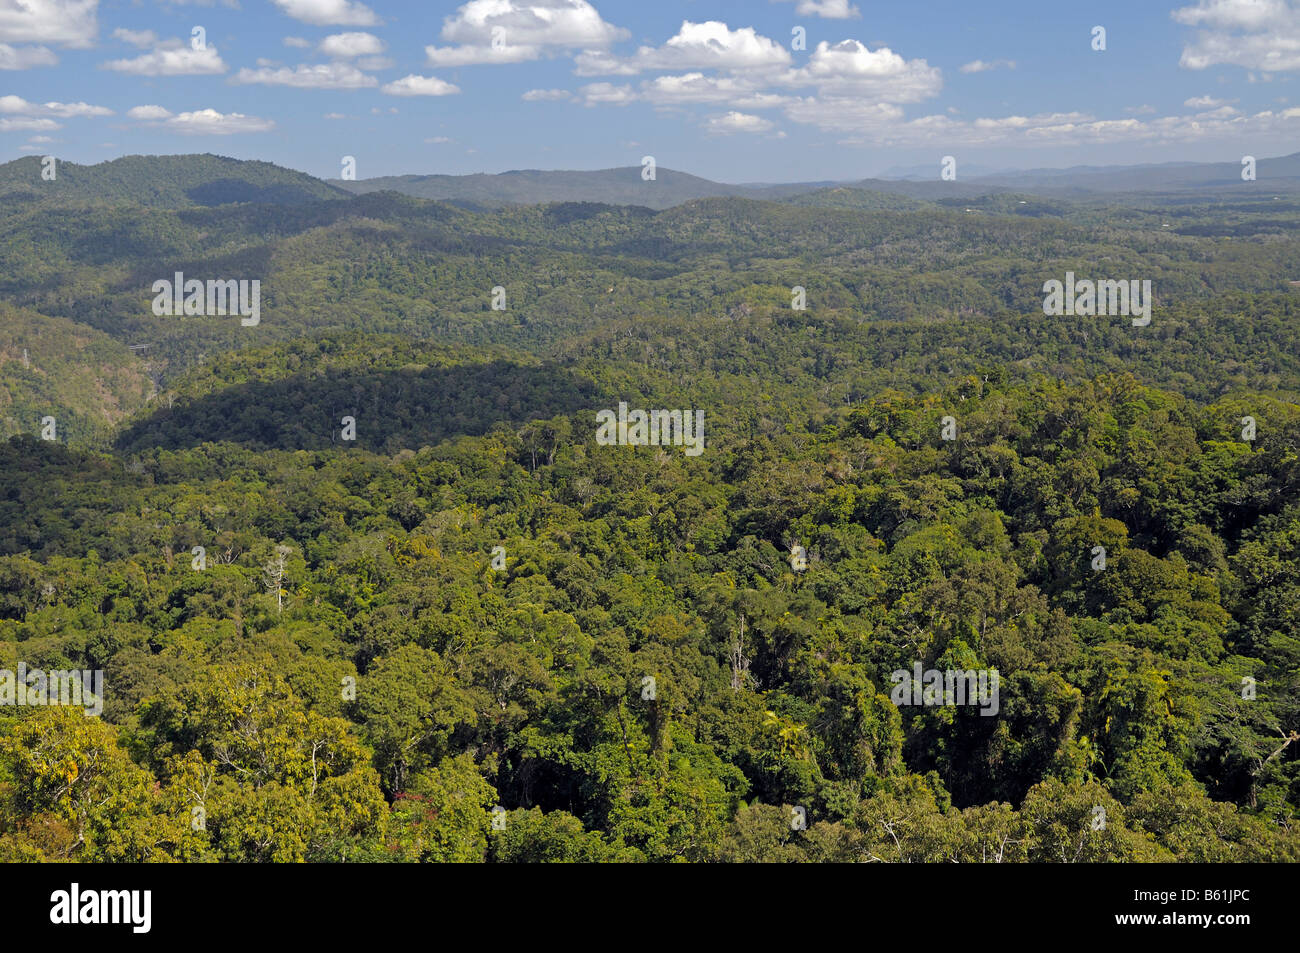 View over primary rain forest, North Queensland, Australia - Stock Image